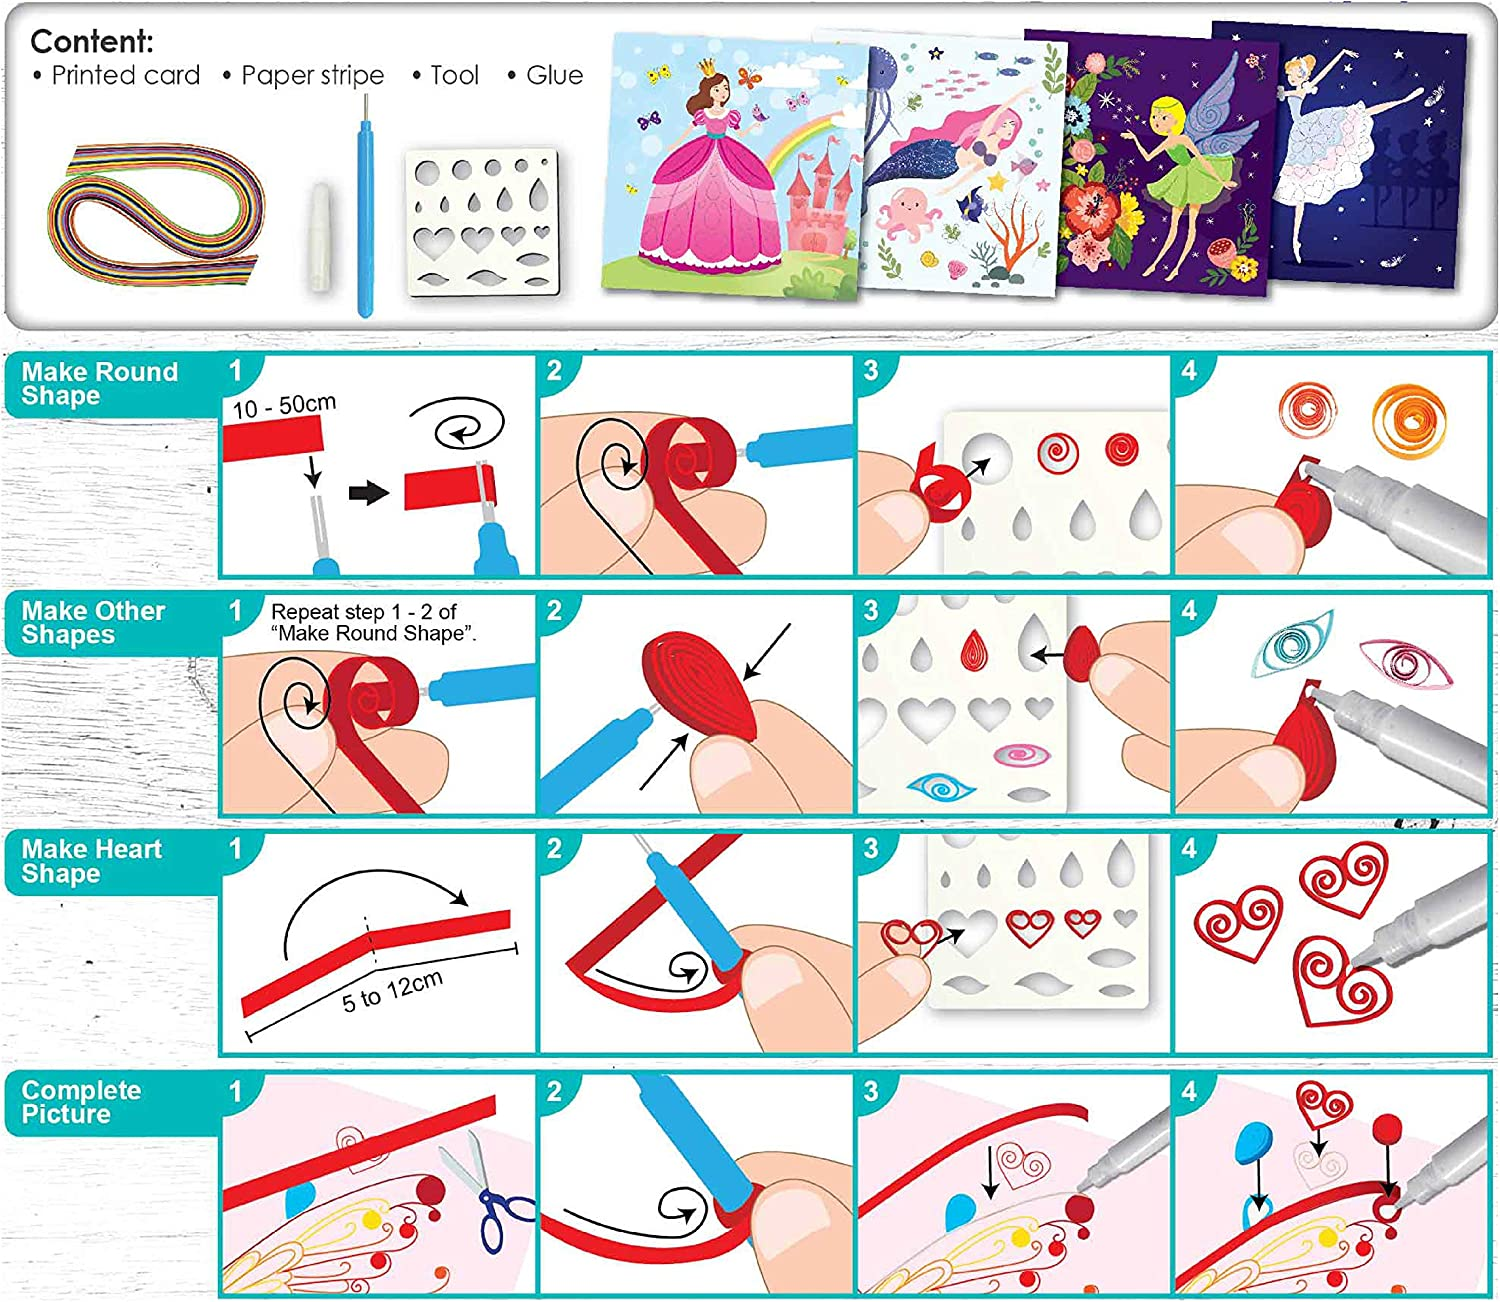 C.S.KIDS PQ02 C.S DIY Arts /& Crafts Gifts Paper Strips /& Tools Included Fairy Tales  3D Quilling Design Kits for Kids Make Art